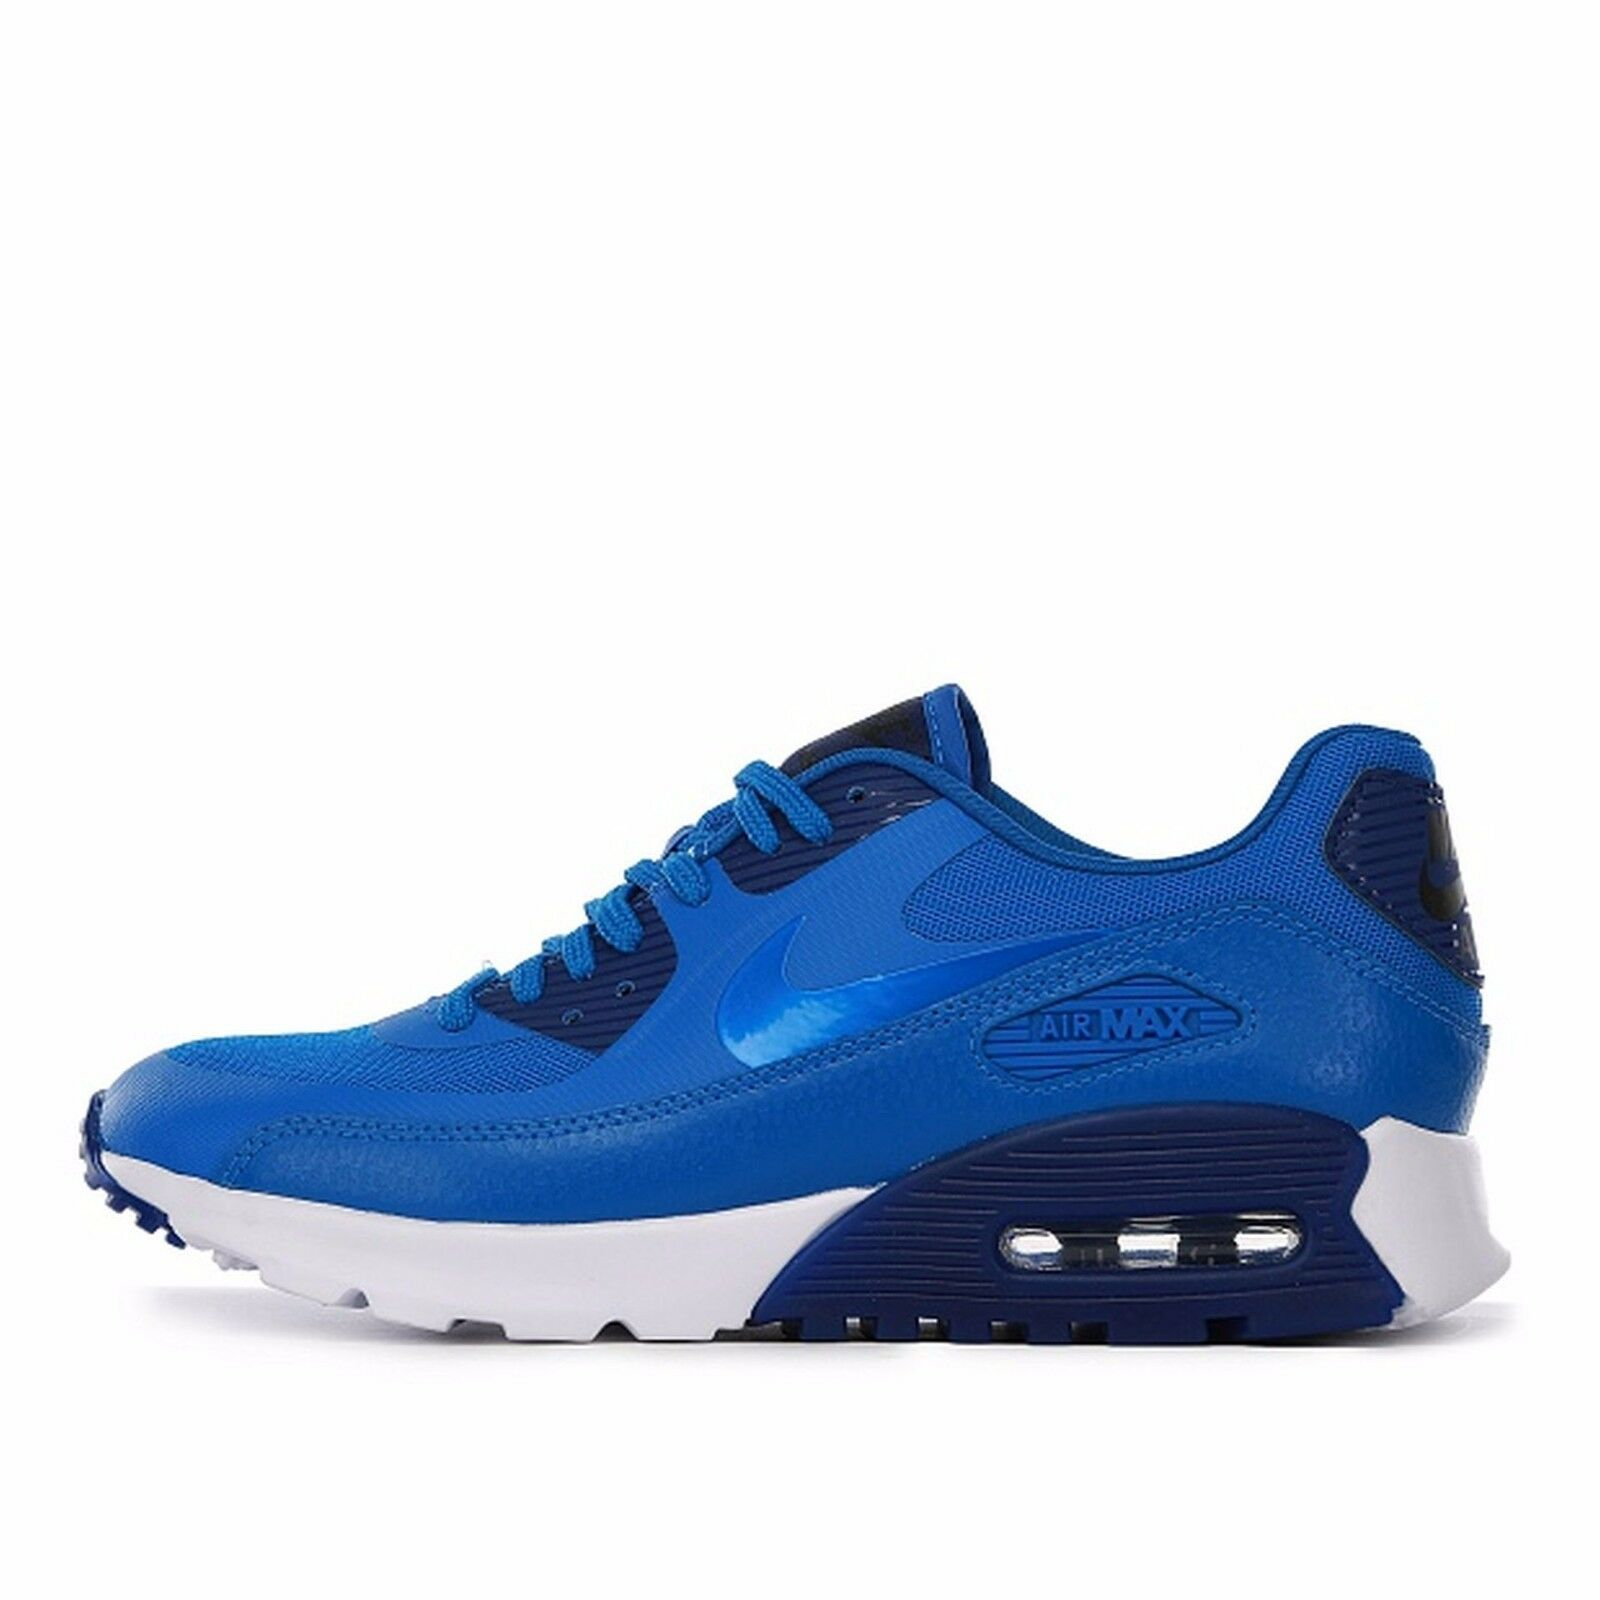 Nike Air Max 90 Ultra Essential Wmn shoes Size 9 724981-401 Soar Royal Black